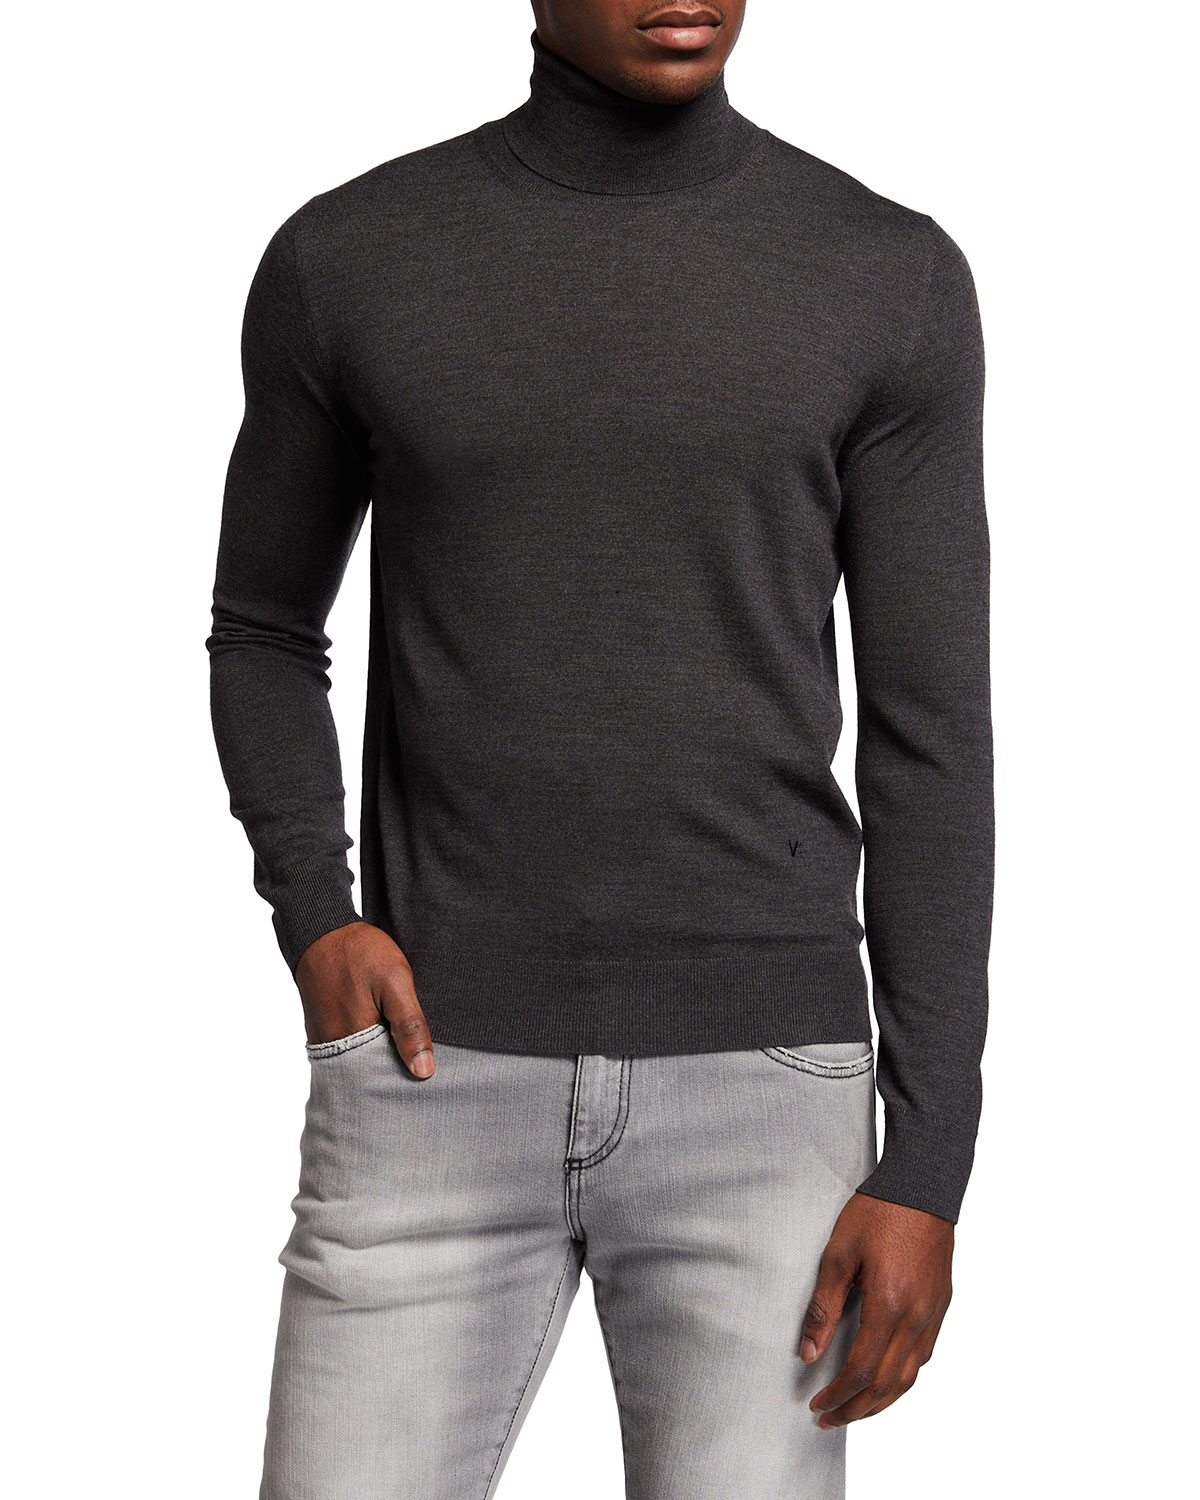 Isaia Merino Wool Turtleneck Sweater